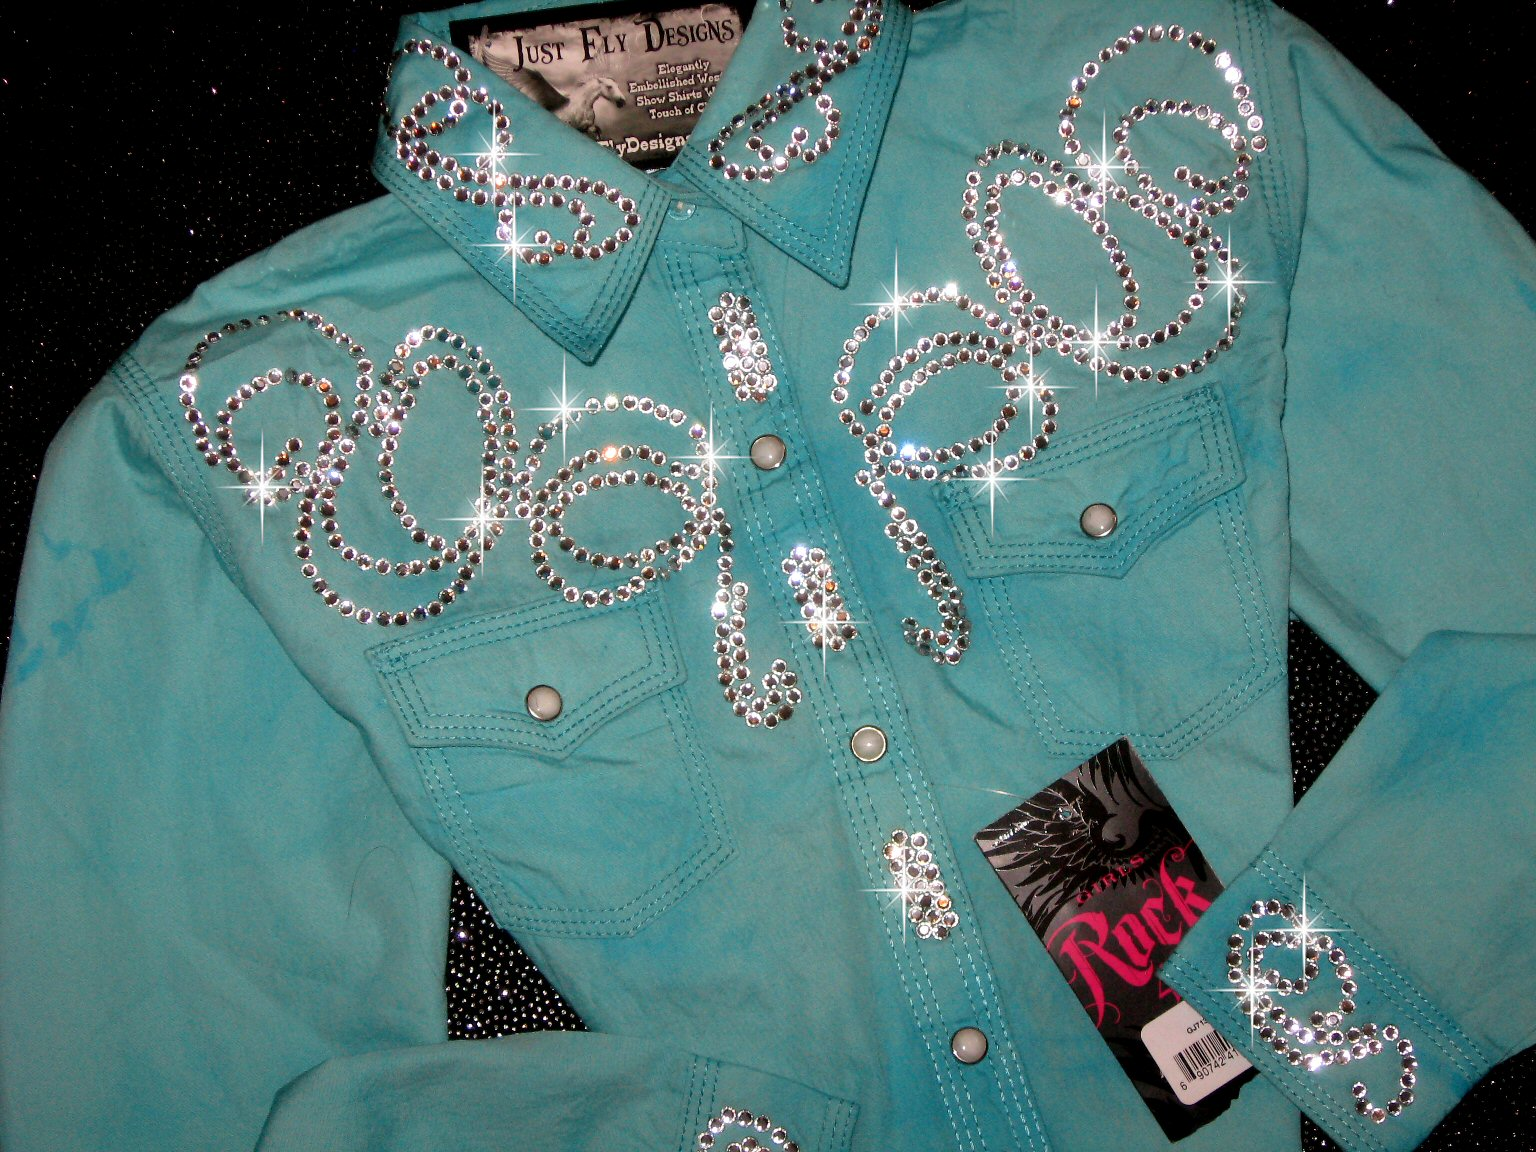 YOUTH! ROCK 47! TURQUOISE/AQUA TIE DYE!! MAXIMUM BLING!